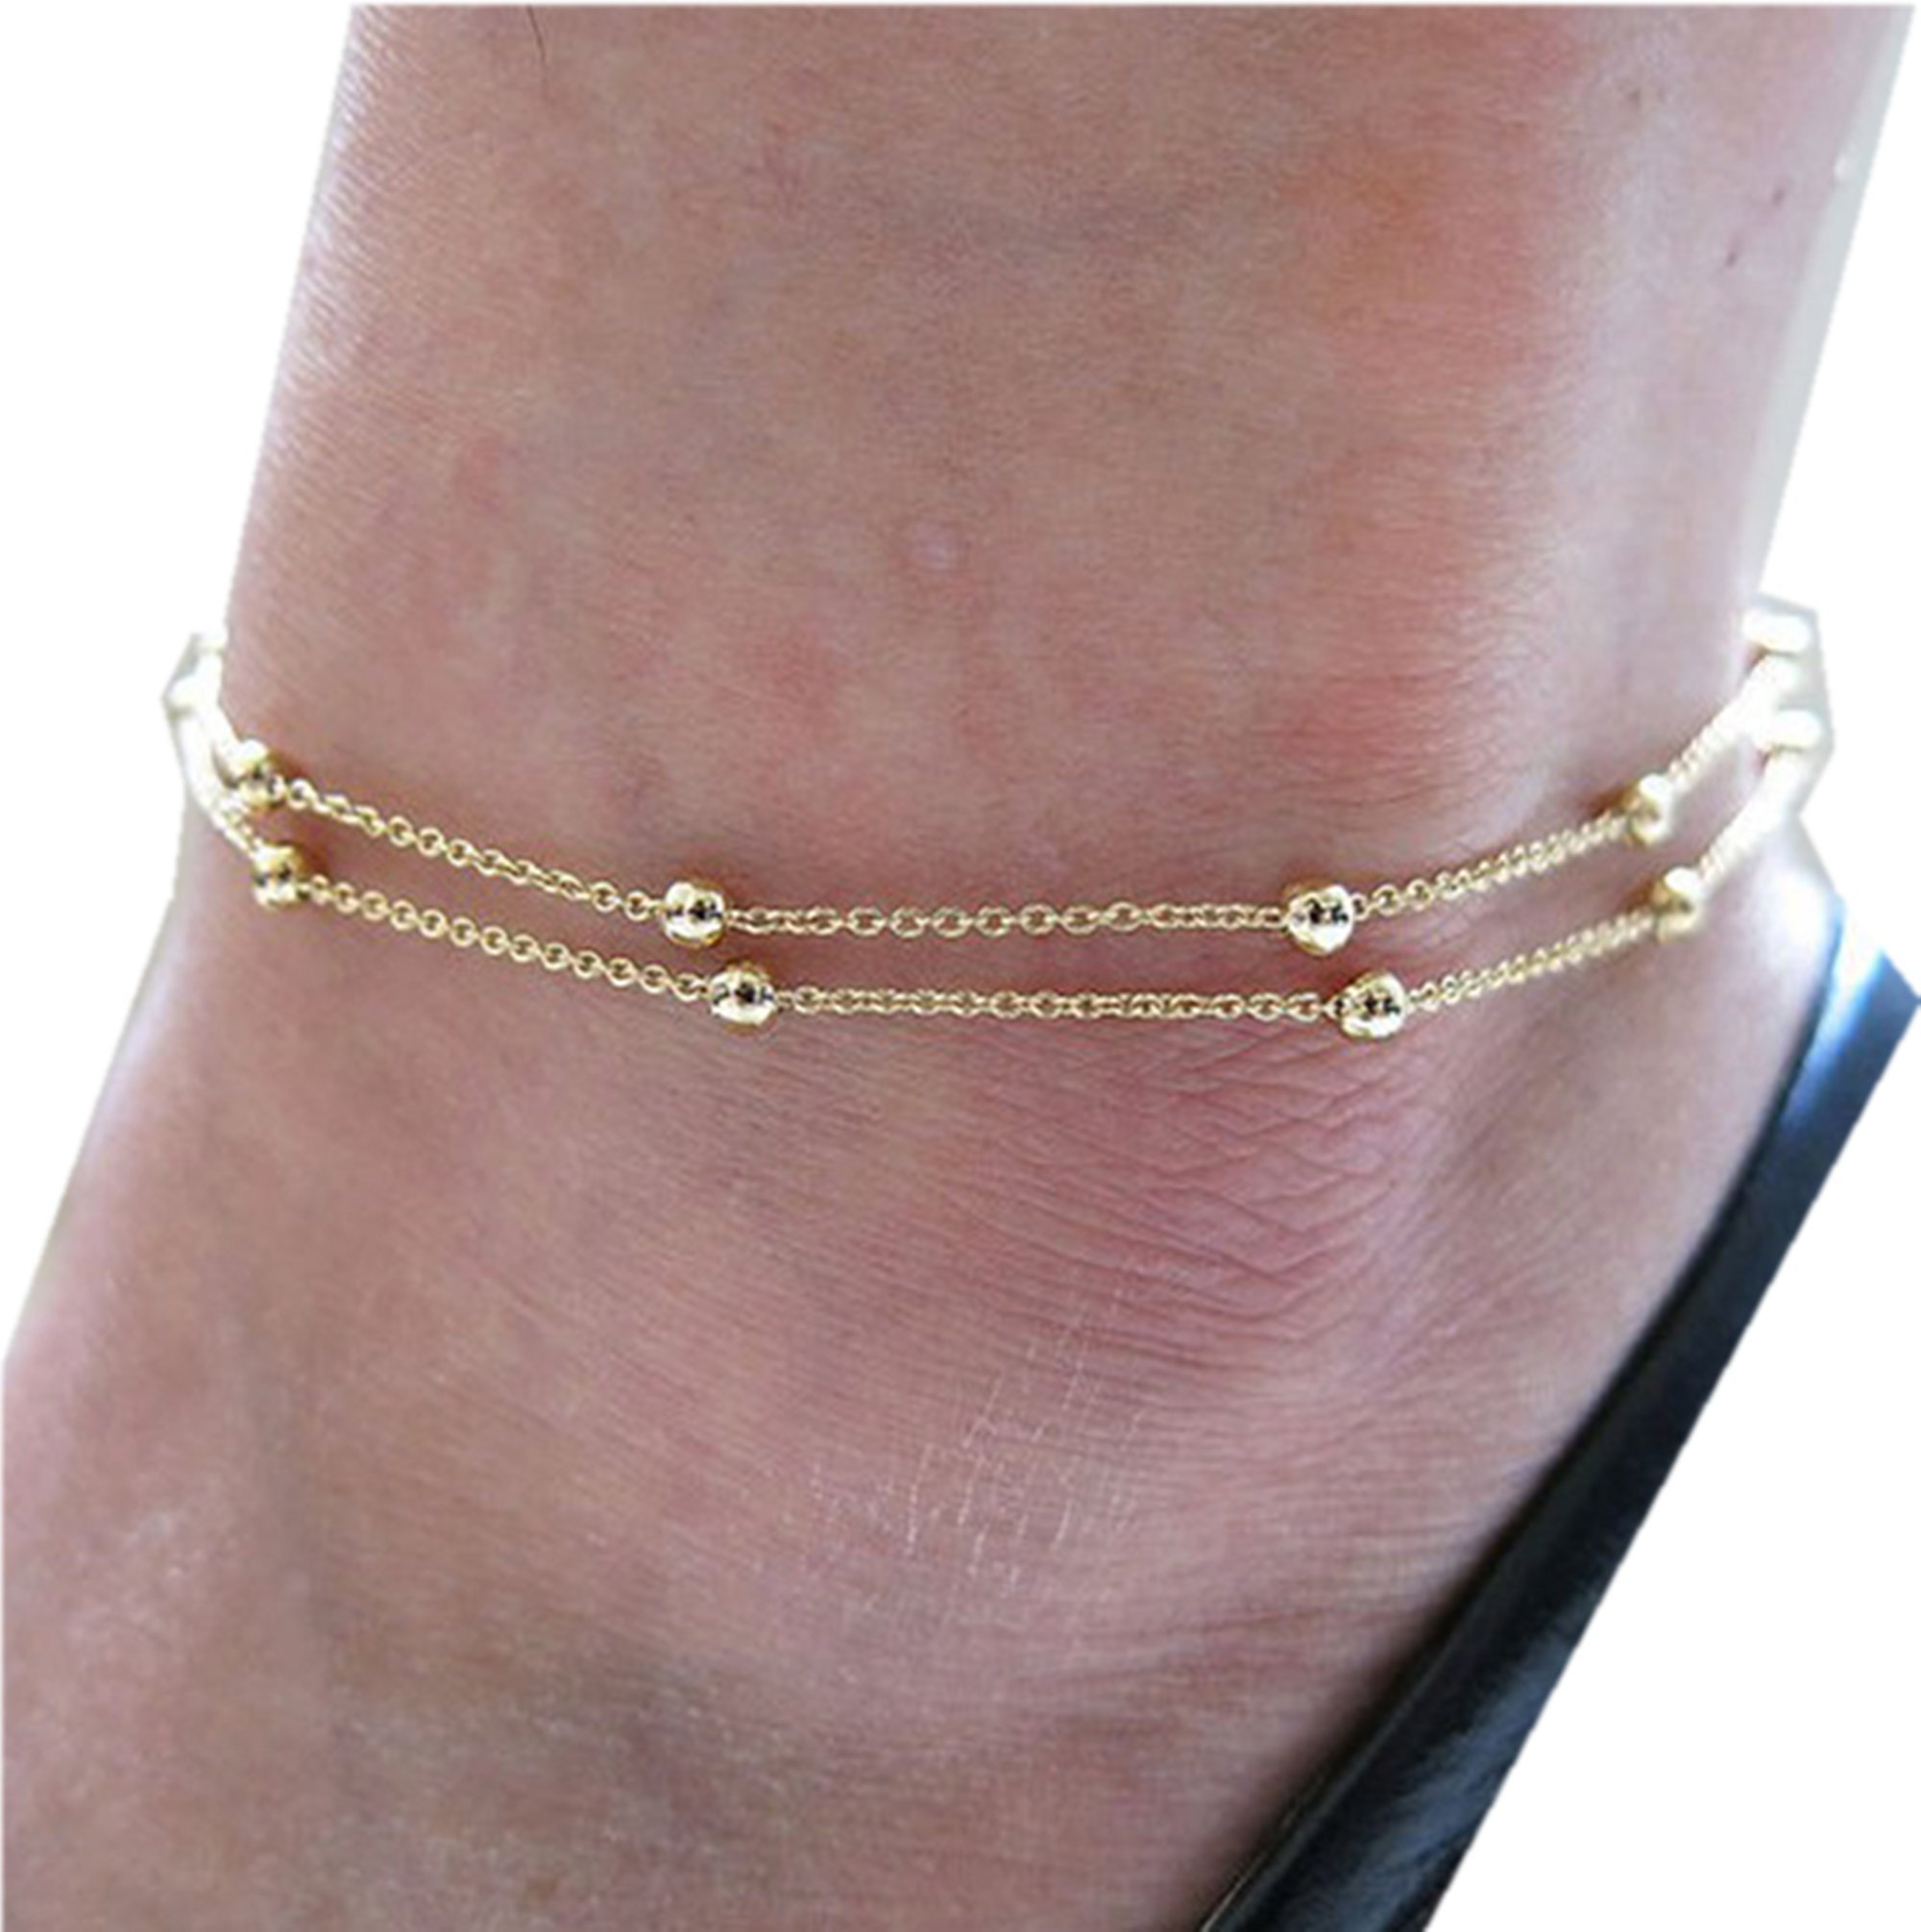 double chain guides ankle cheap shopping at line barefoot sannysis anklet find deals quotations on get beach bracelet bracelets simple foot